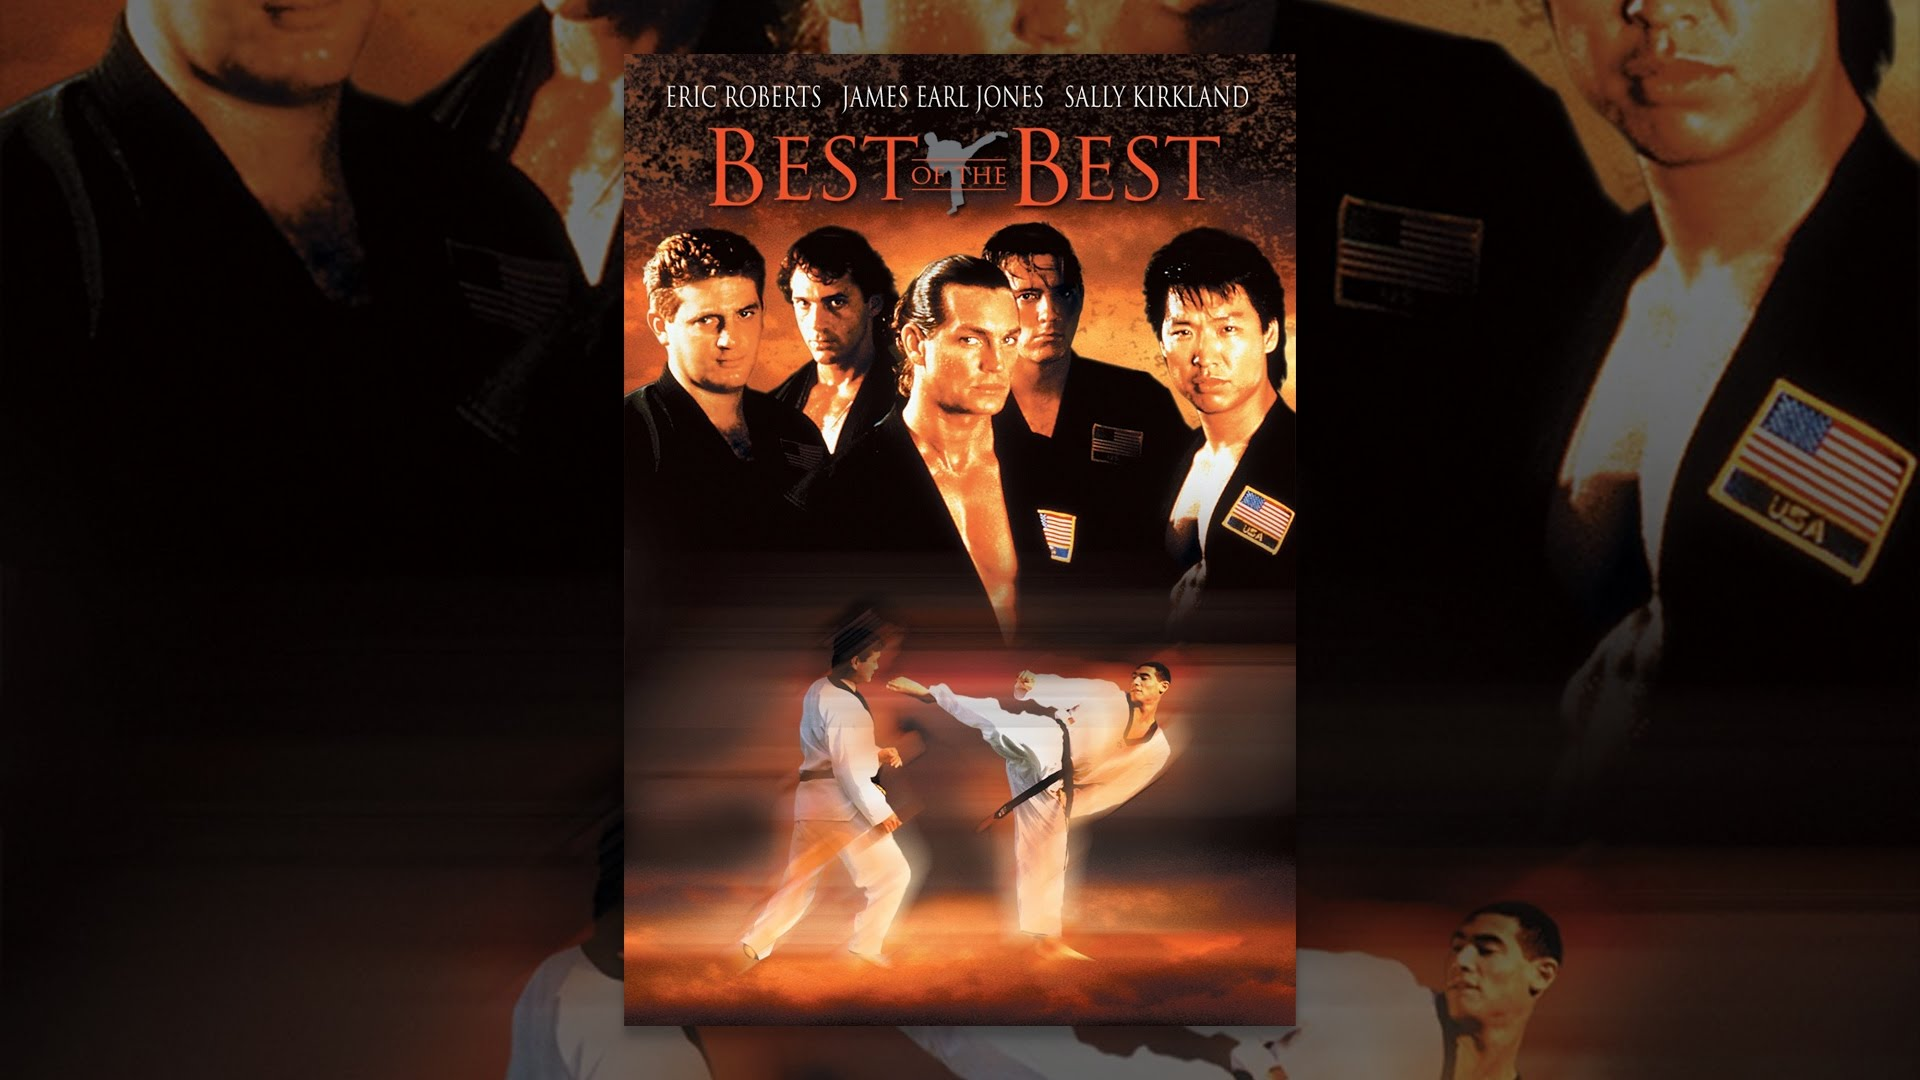 best of the best 1989 movie free download